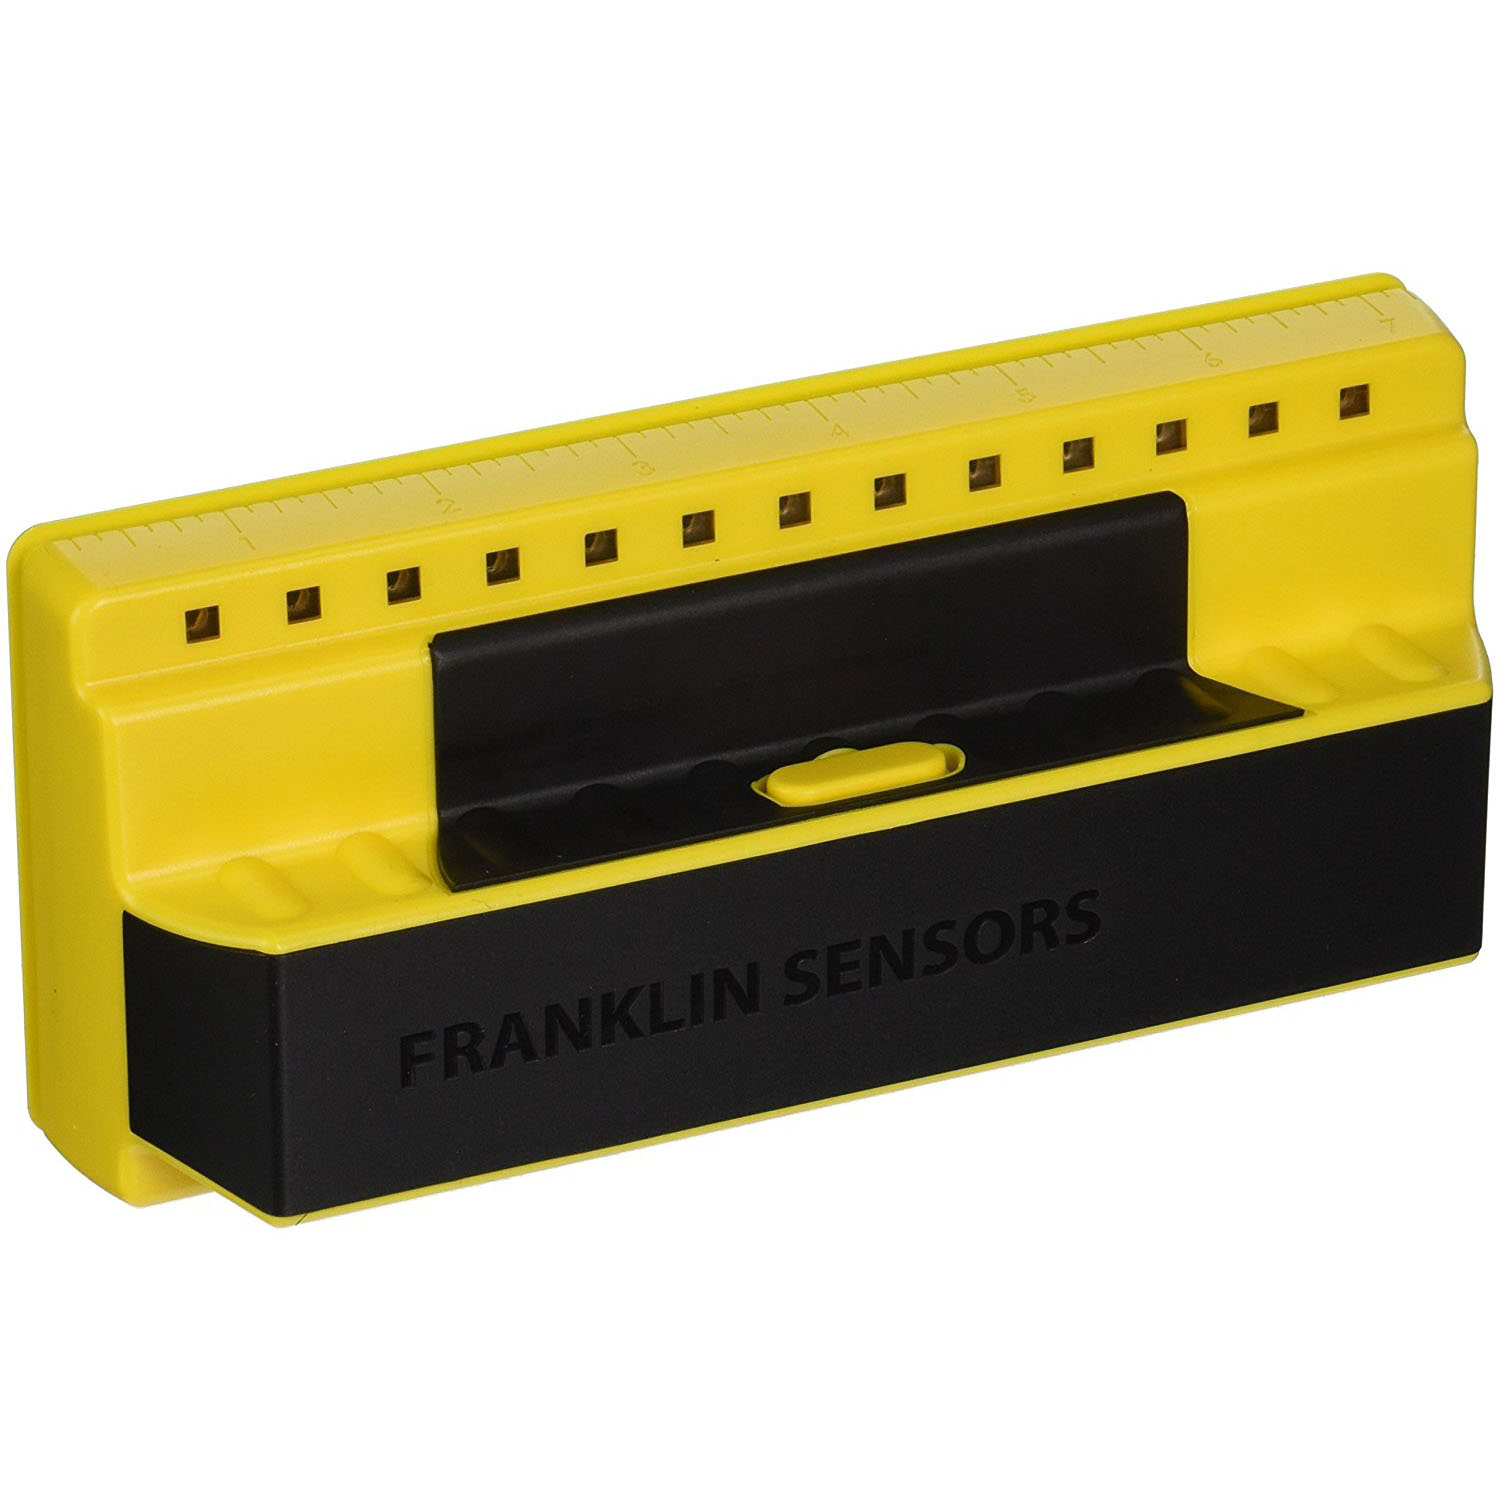 Franklin Sensors ProSensor 710 Precision Stud Finder